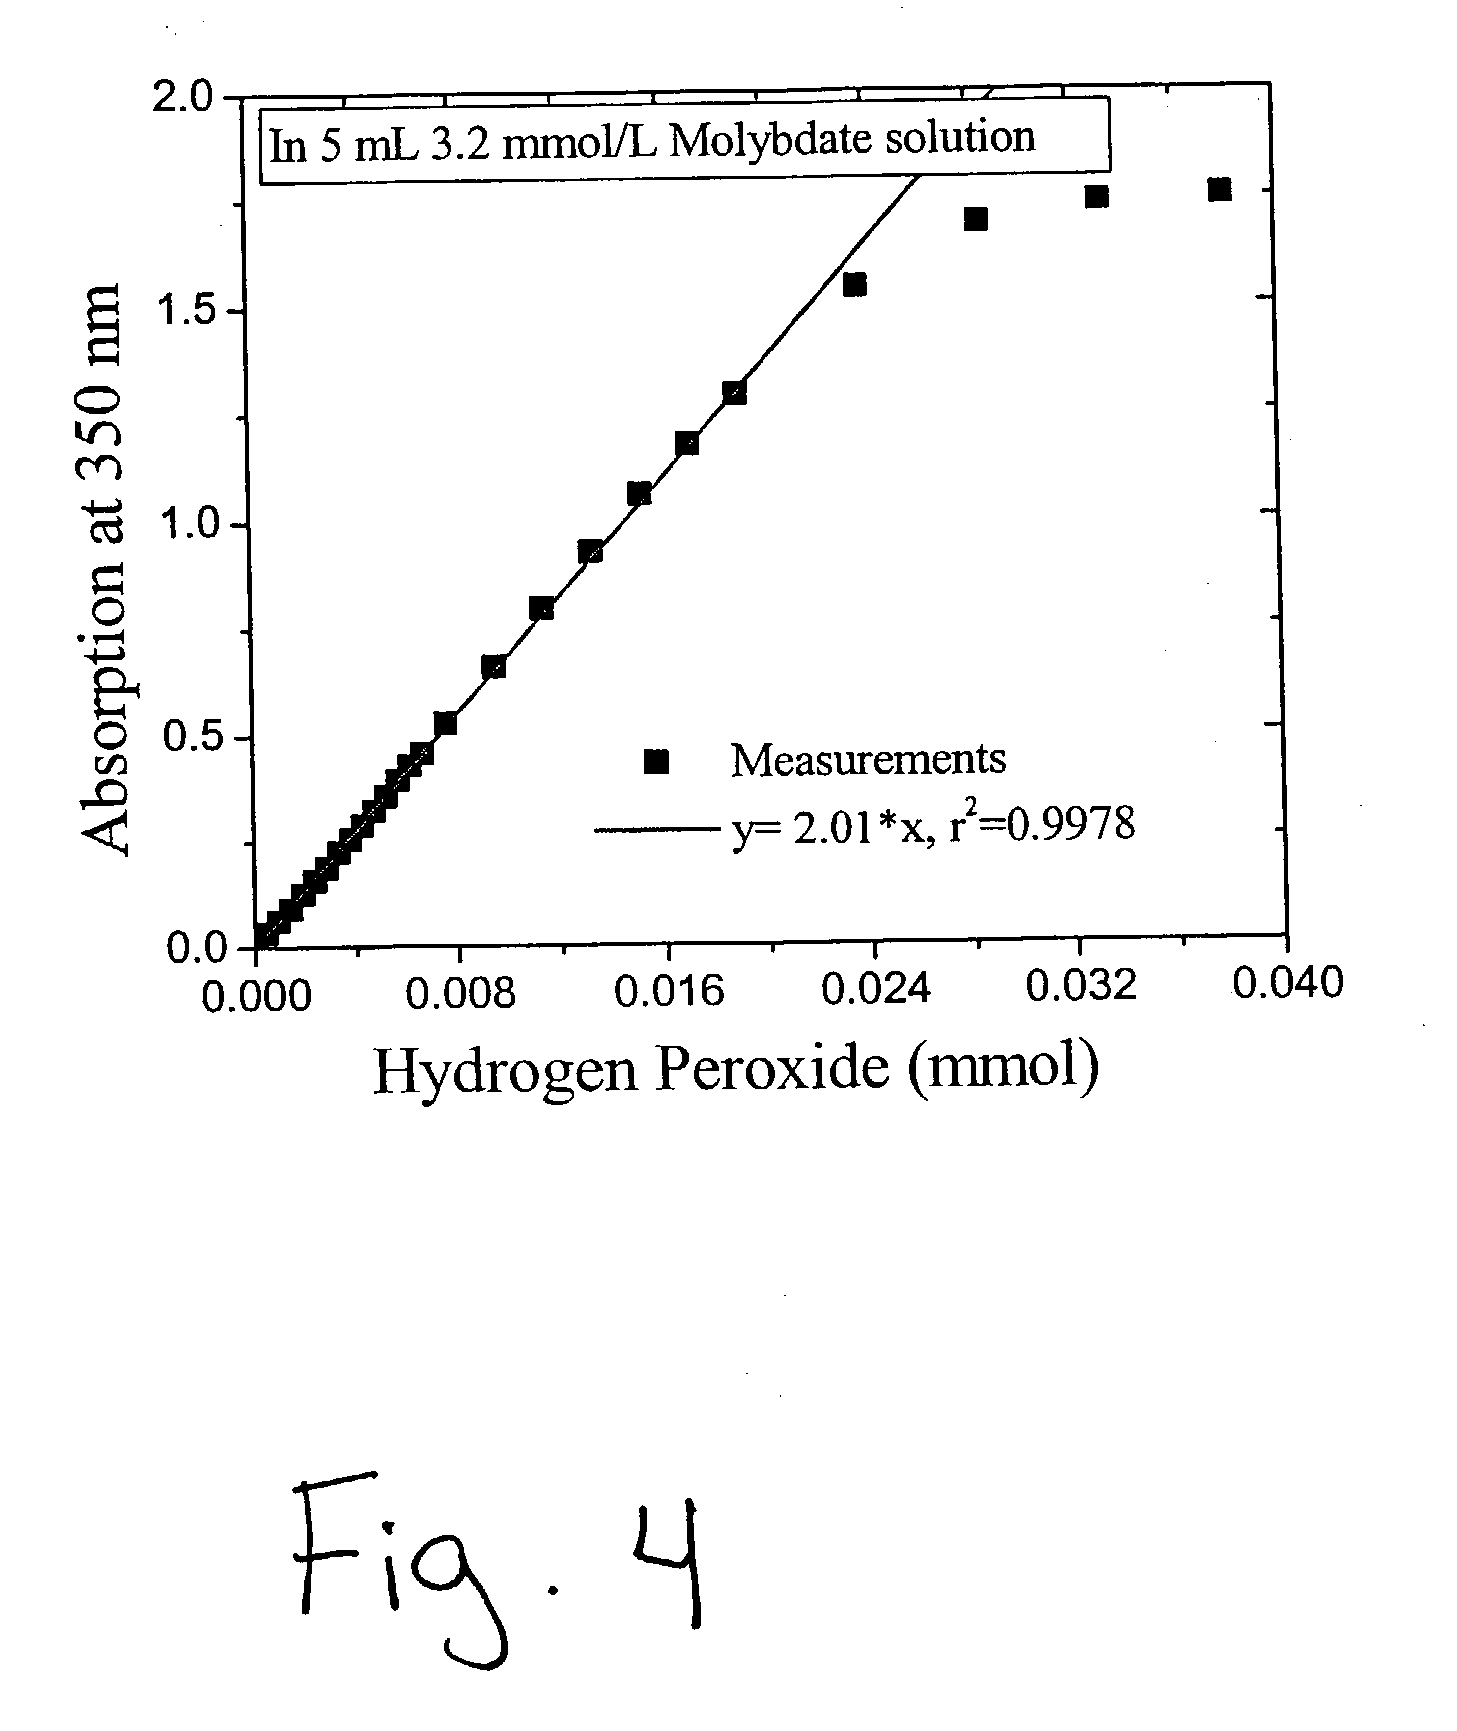 concentration of hydrogen peroxide Hydrogen peroxide, also known as dihydrogen dioxide, has a ph level anywhere from 1 to 5, depending on the solution's concentration and how it is produced many hydrogen peroxide solutions contain stabilizers that affect the product's ph the solution's ph level can be increased or decreased .